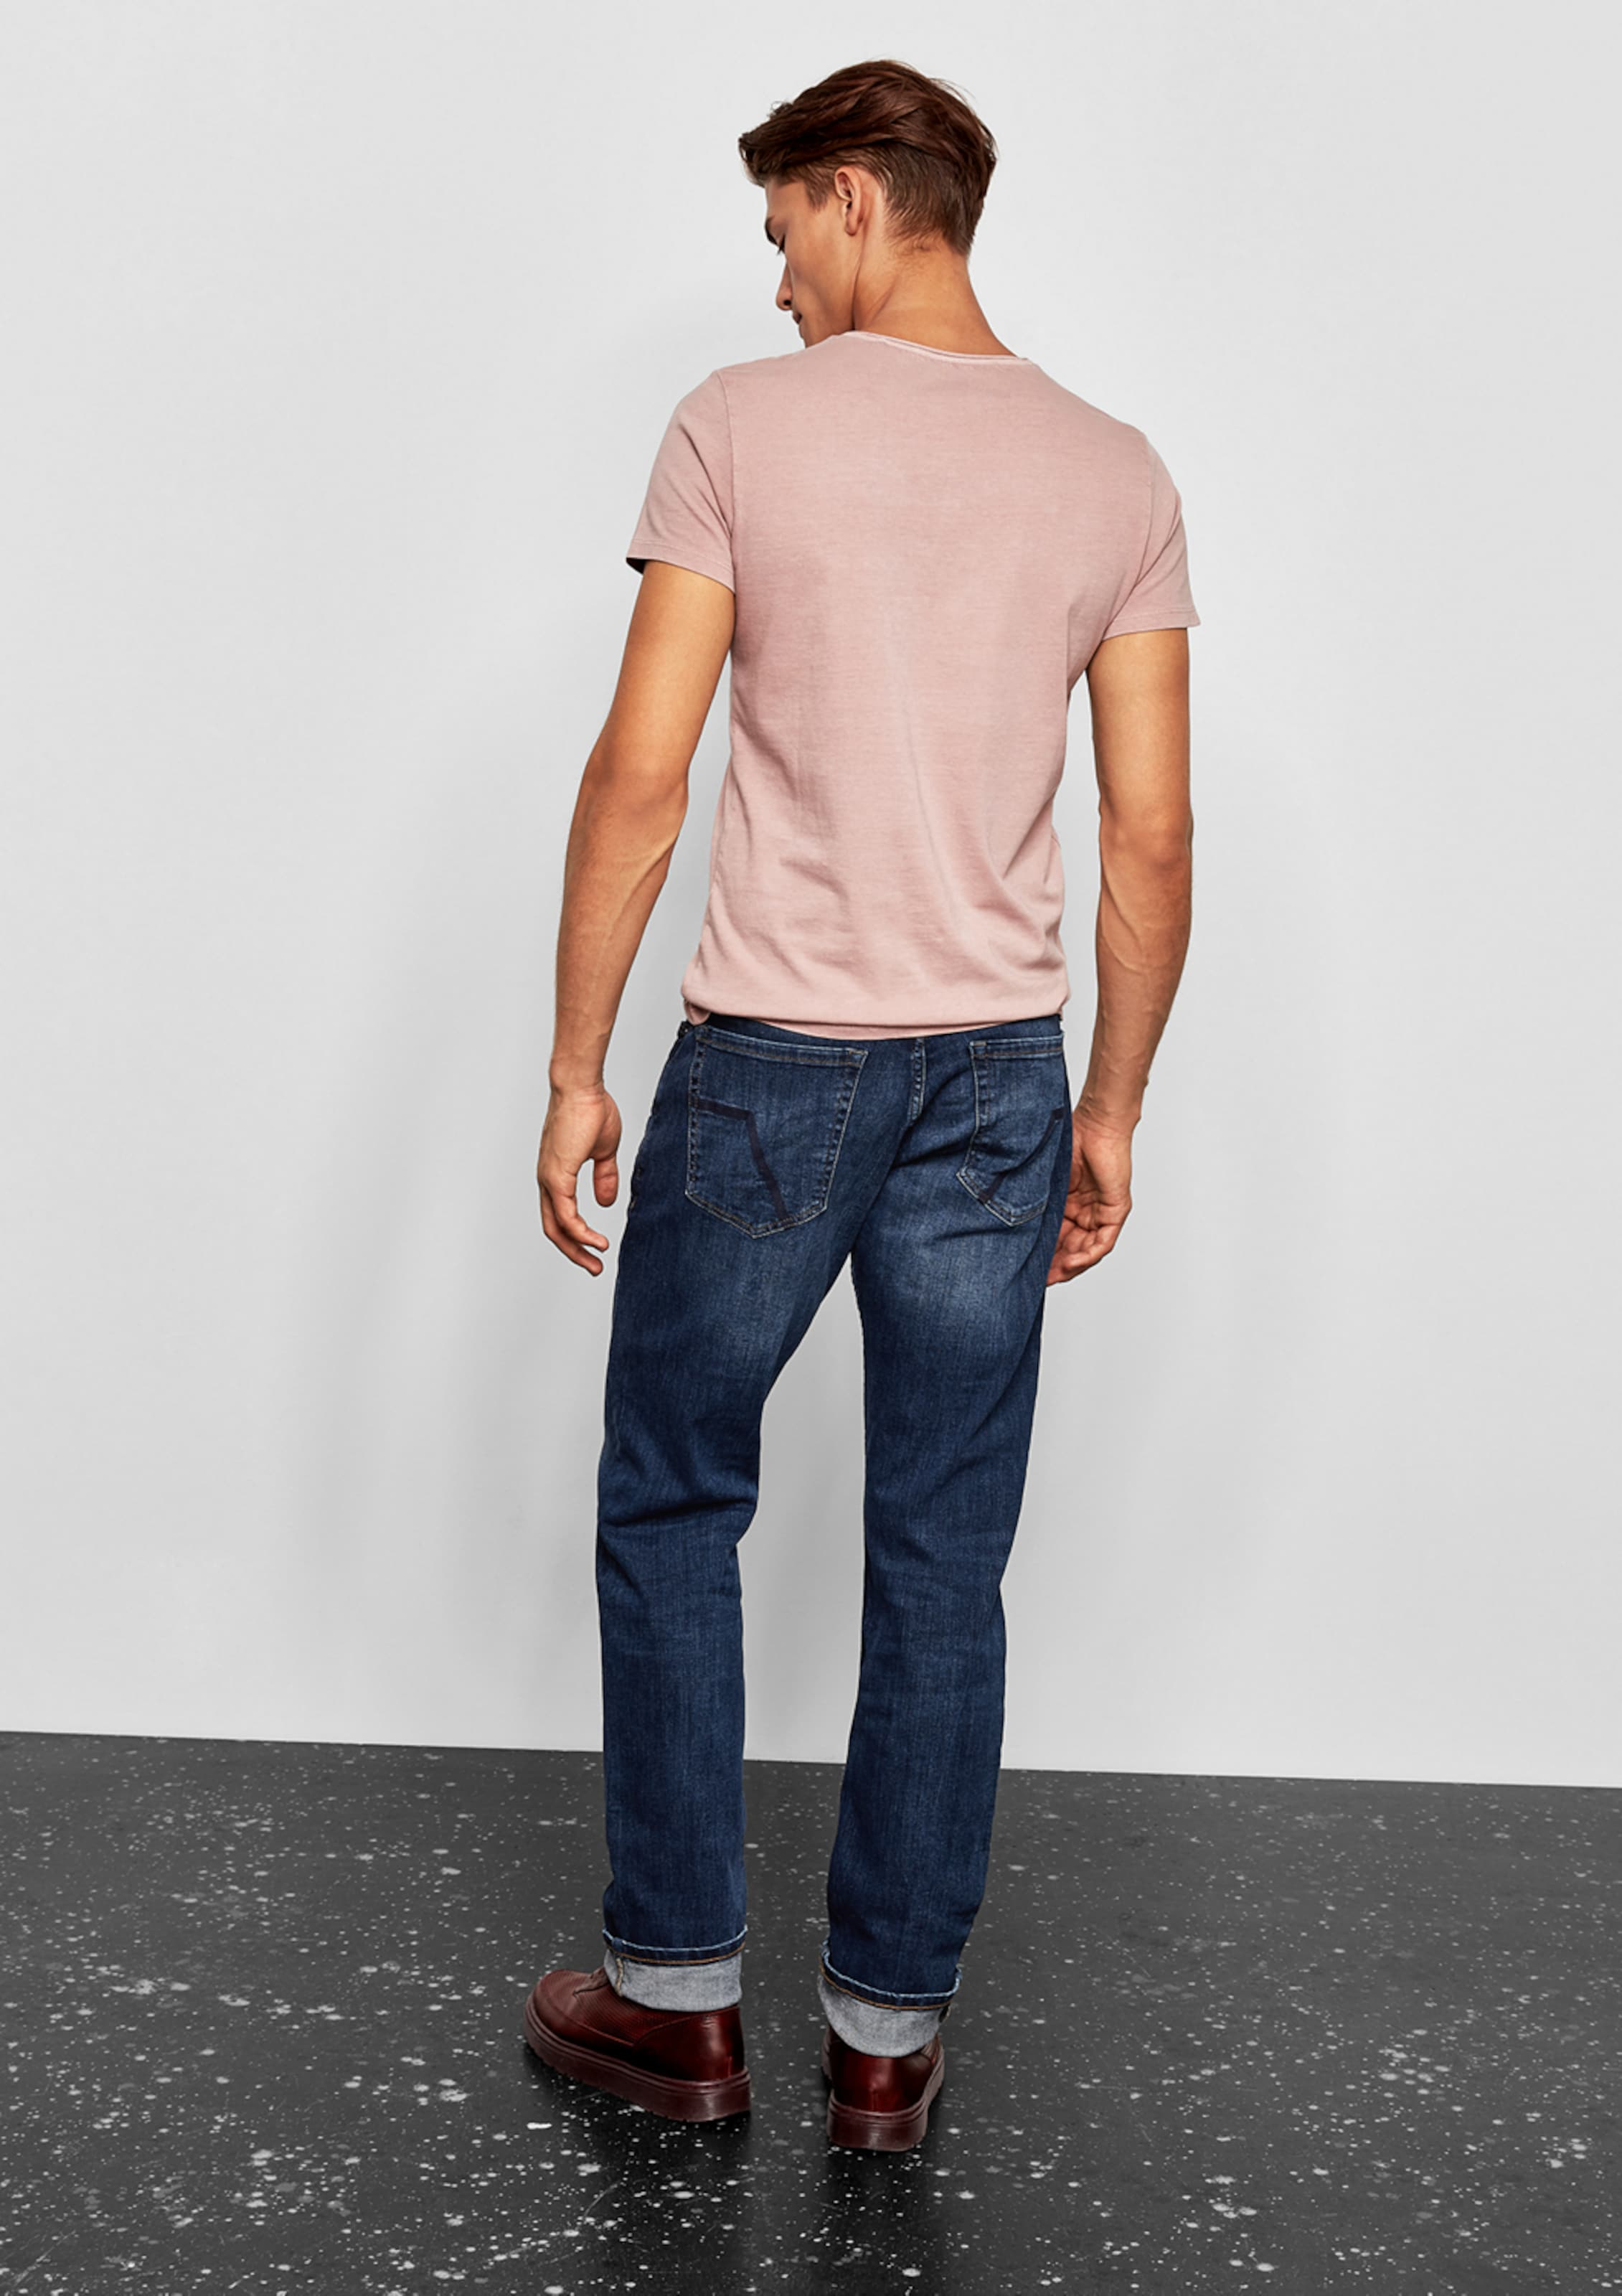 'pete' Stretchjeans Dunkelblau Designed s By Q In KJ1clTF